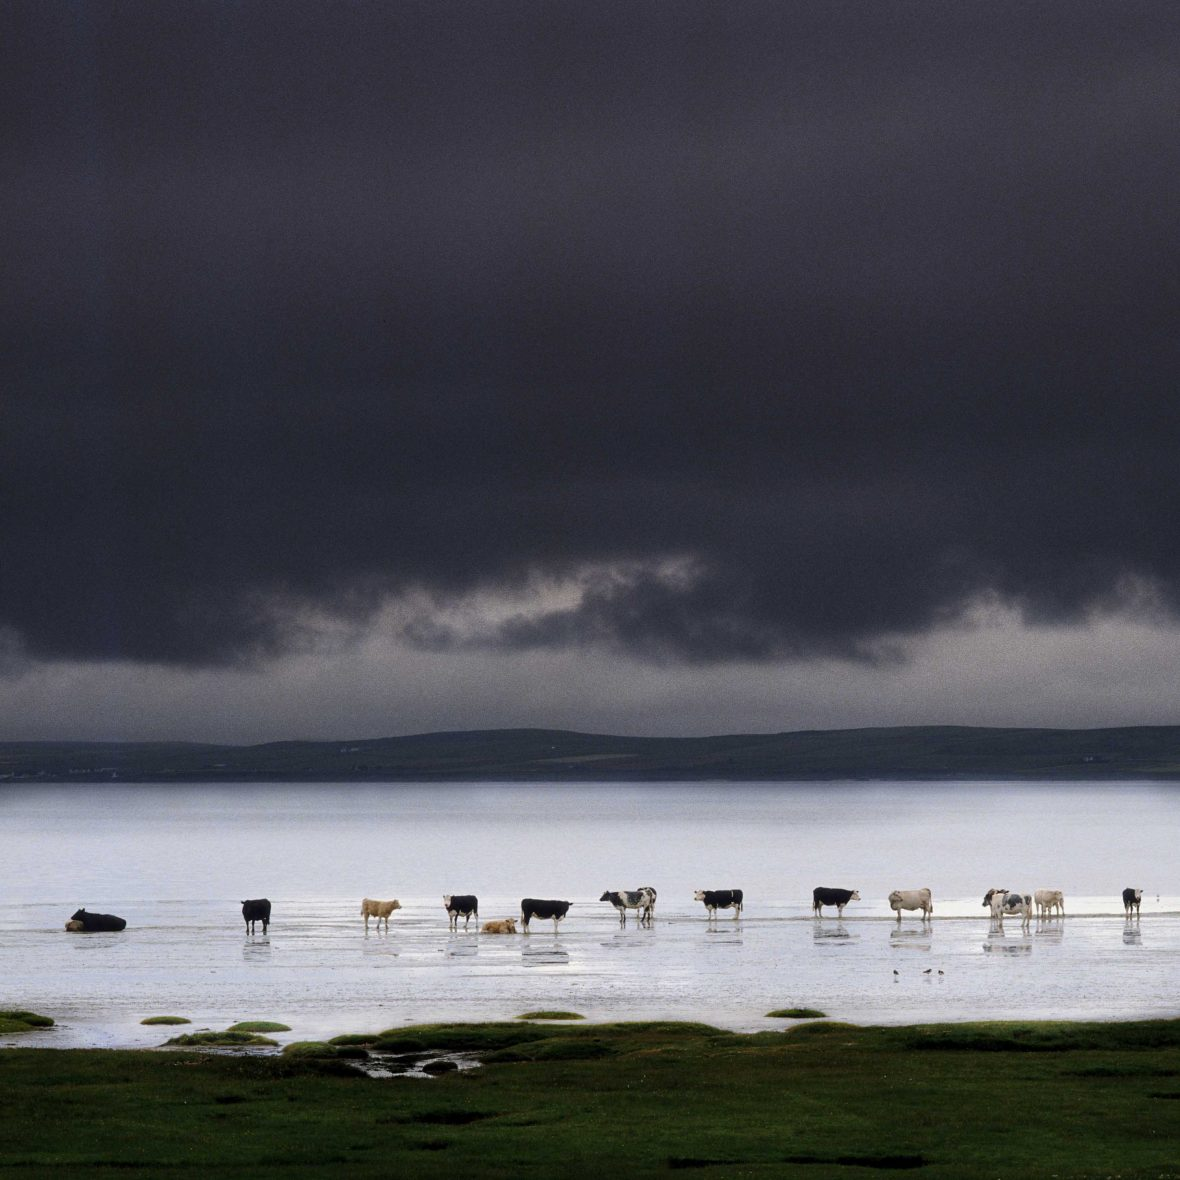 Celestial cows lining up in Islay, Scotland.